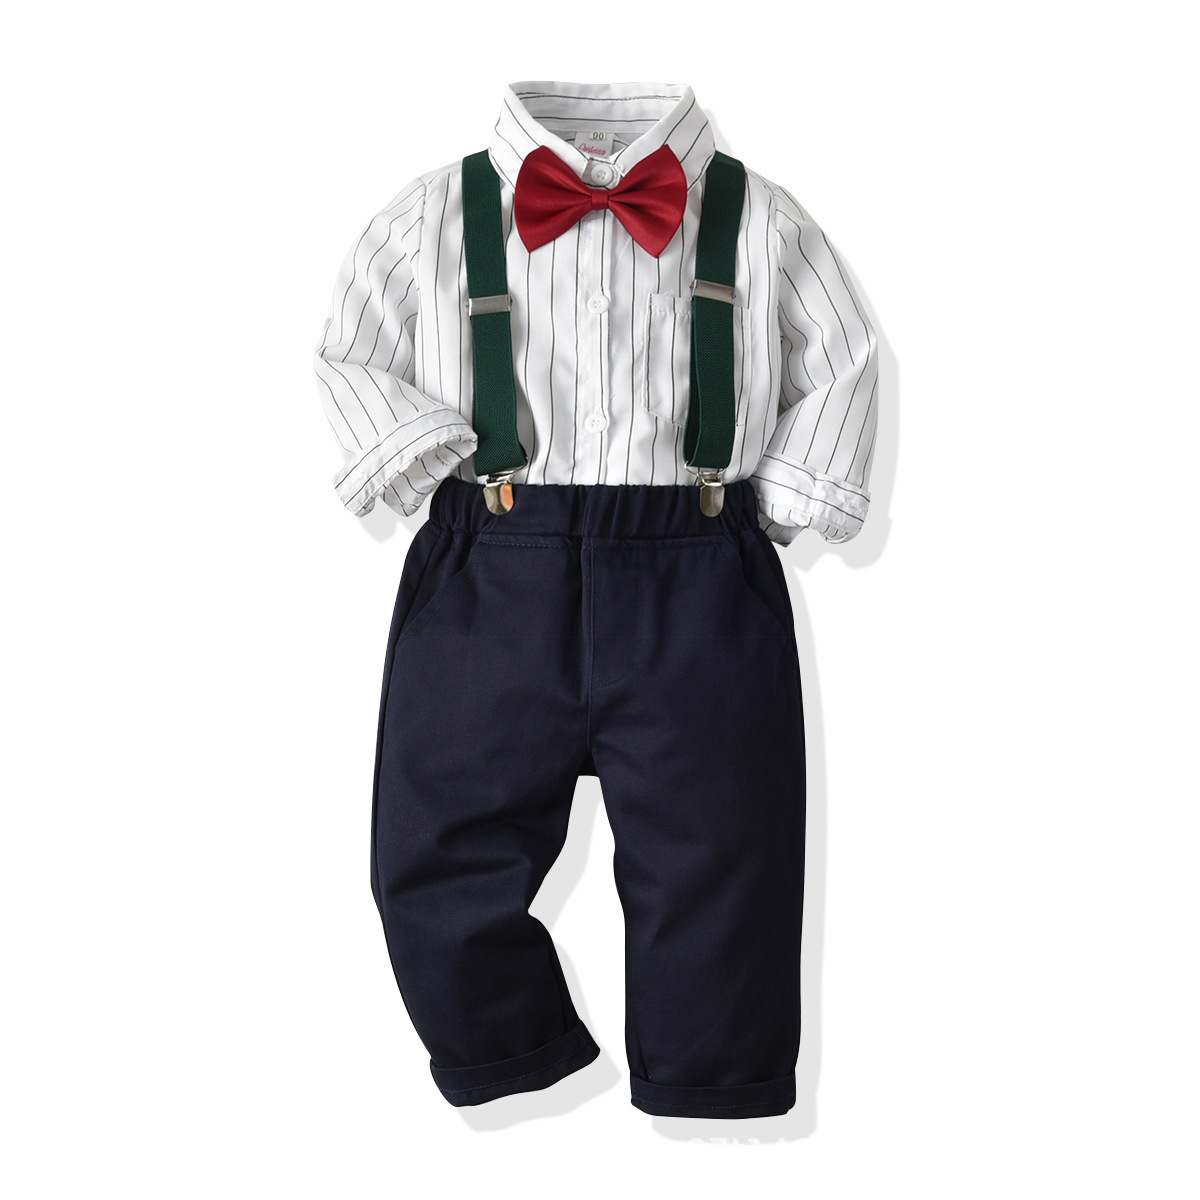 2019 newest design baby boy blouse and bib pants clothing gentleman suit with factory wholesale price